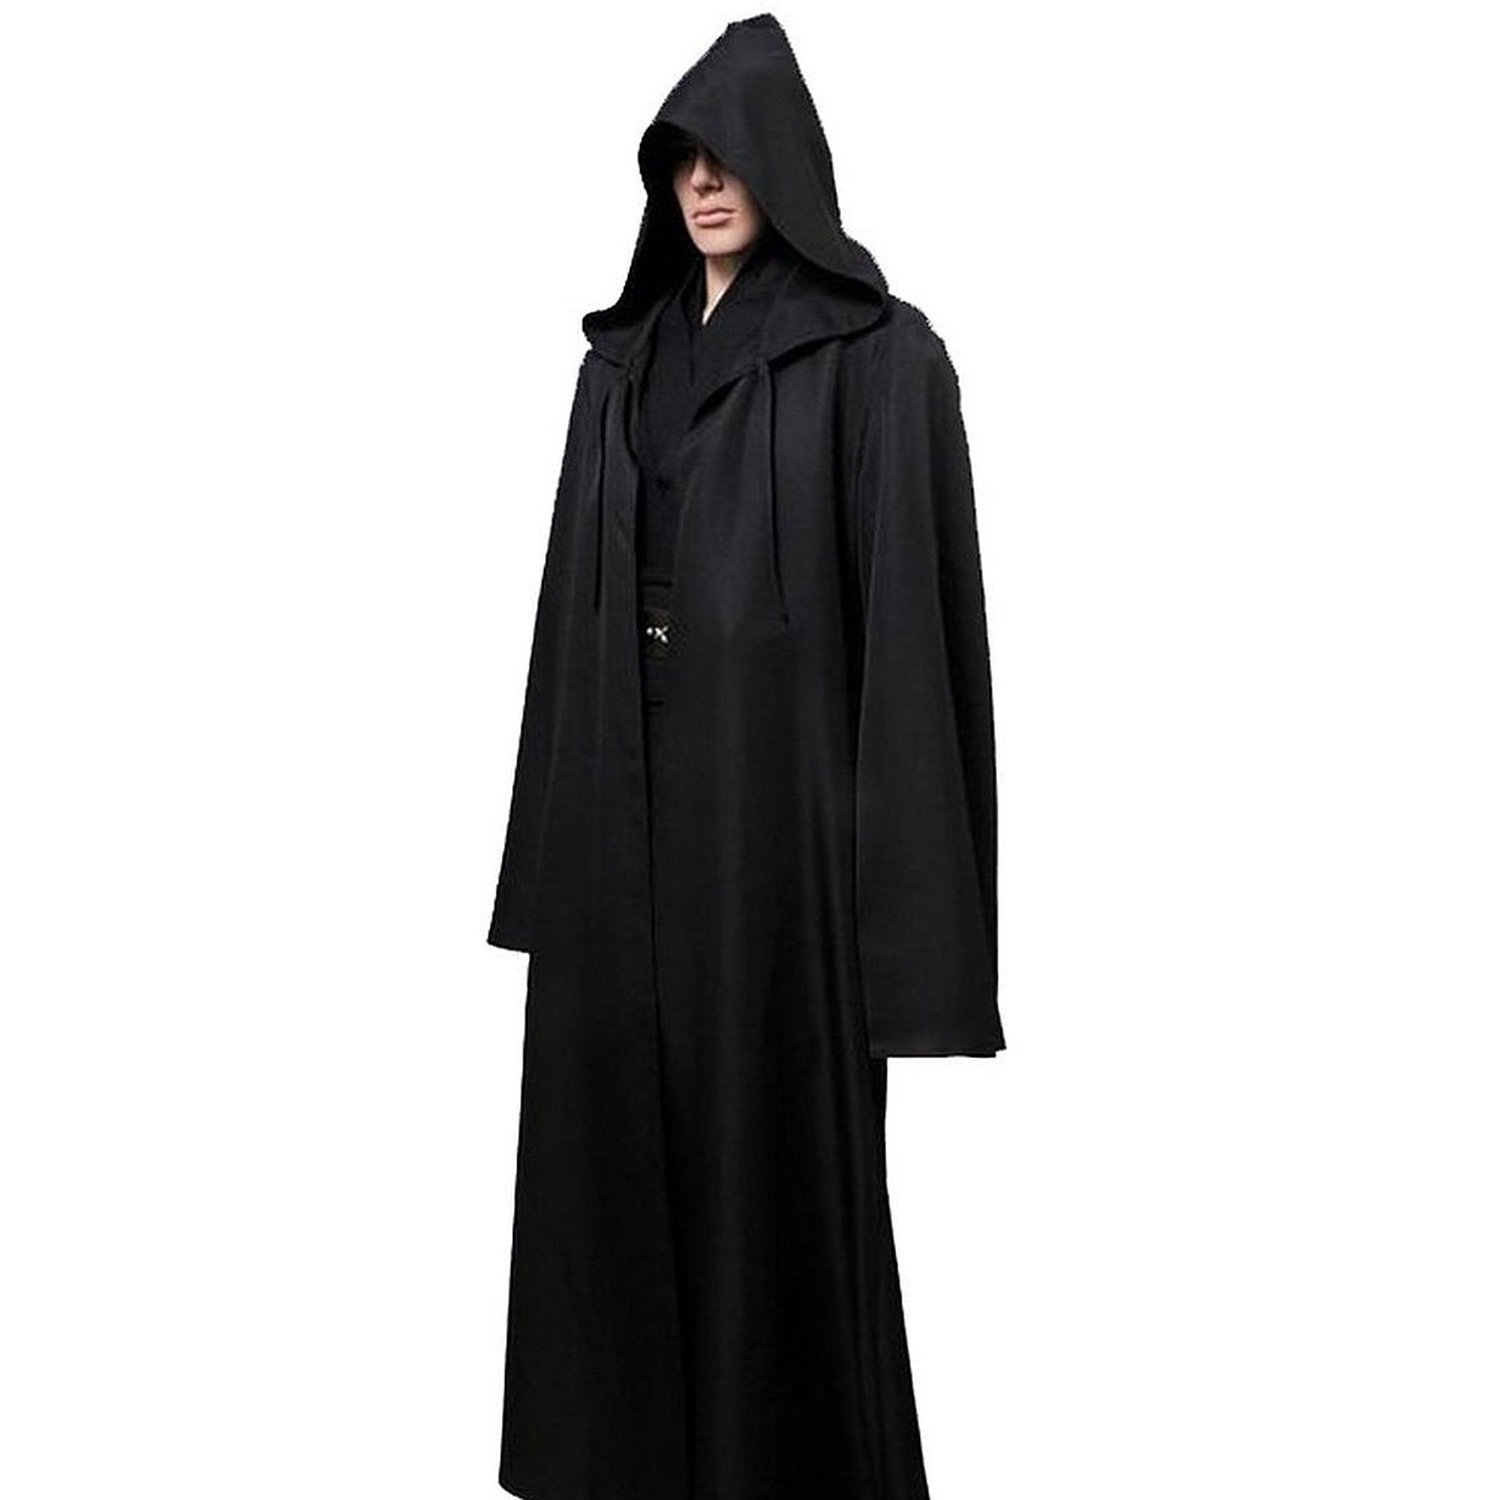 Anakin Skywalker Costume Star Wars Gift